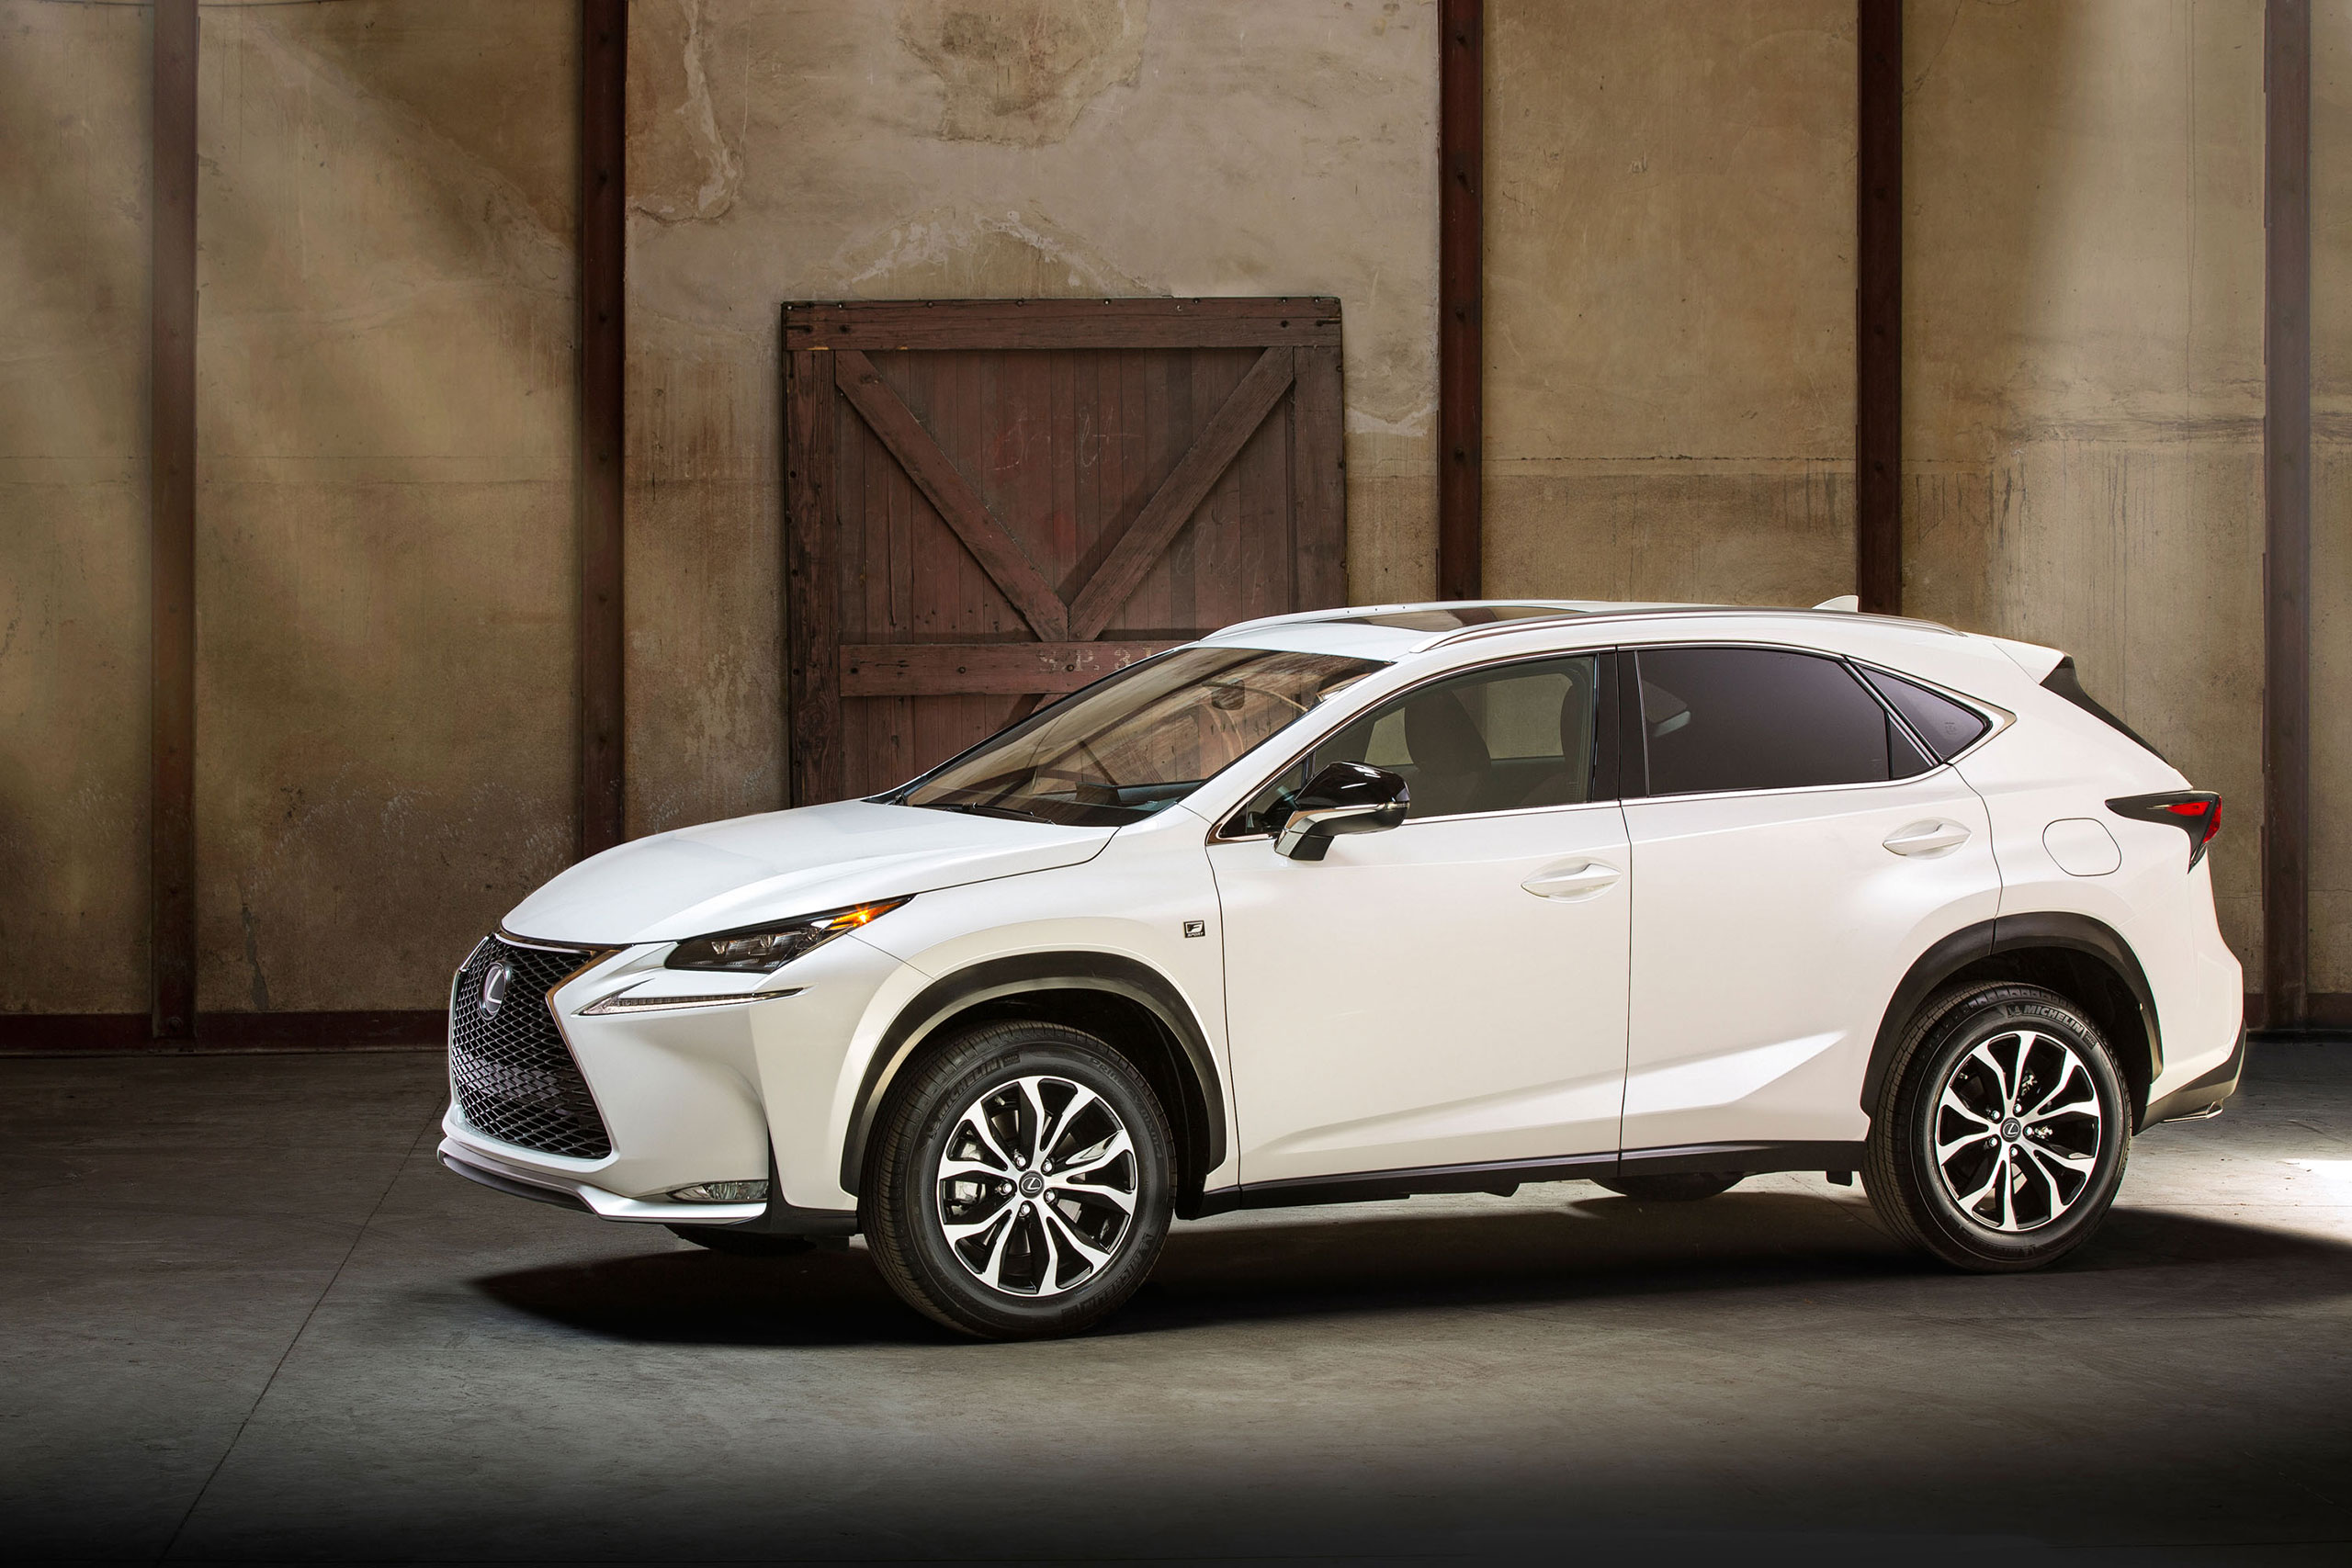 2015 lexus nx f sport photo gallery lexus enthusiast. Black Bedroom Furniture Sets. Home Design Ideas